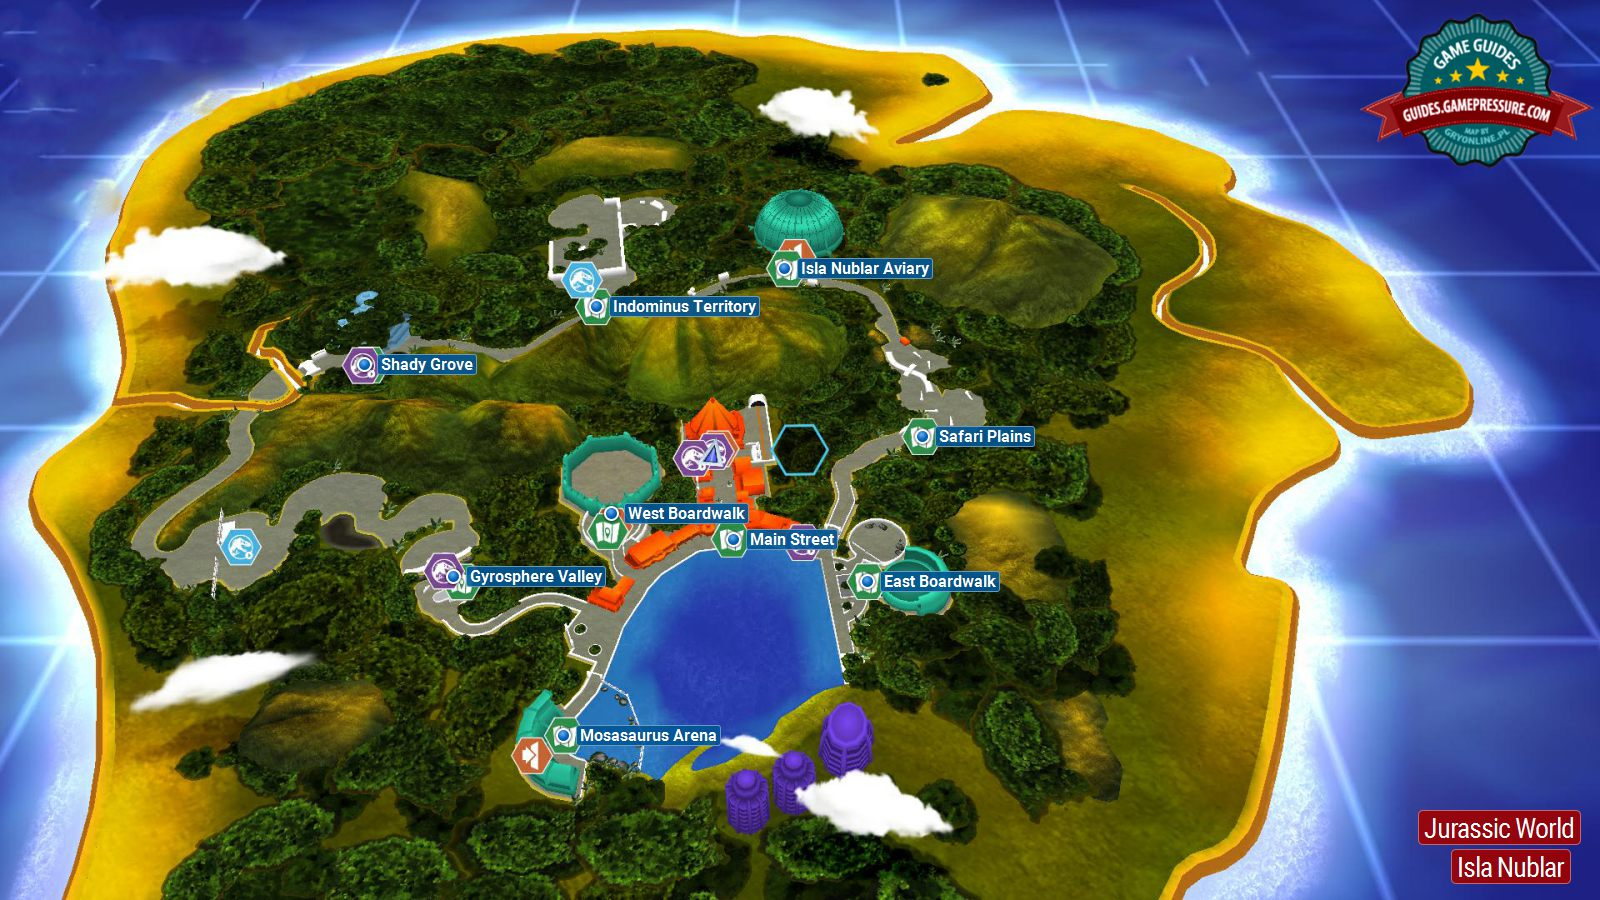 Introduction and map jurassic world secrets in free roam lego lego jurassic world jurassic world gumiabroncs Image collections